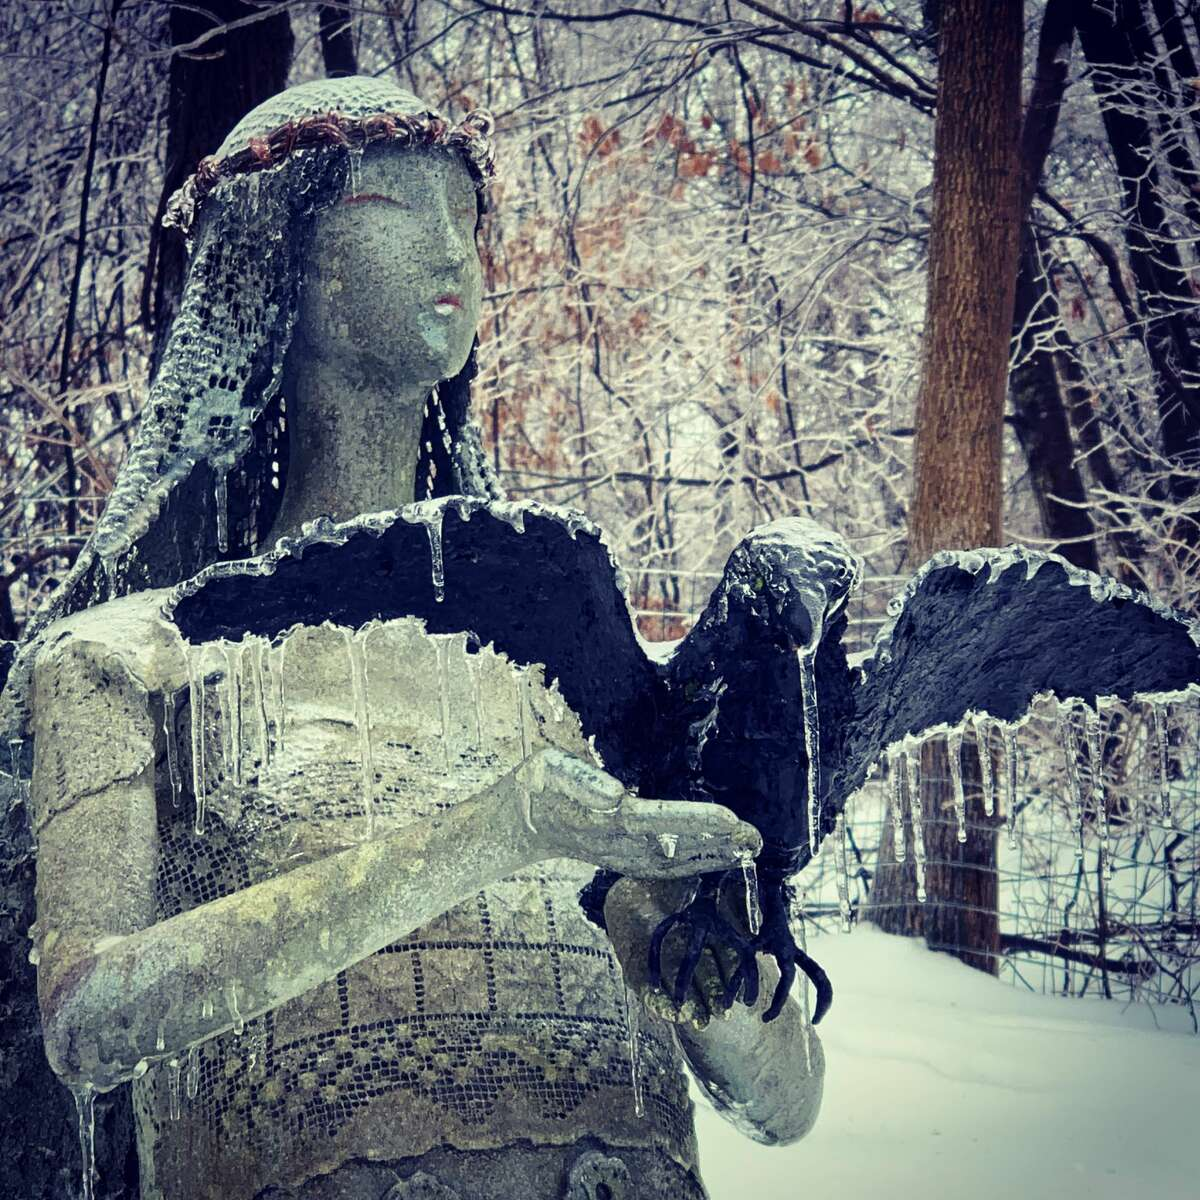 The recent ice storm enhances the beauty of this statue made - and photographed - by Judy Fenoff in her Ghent back yard.